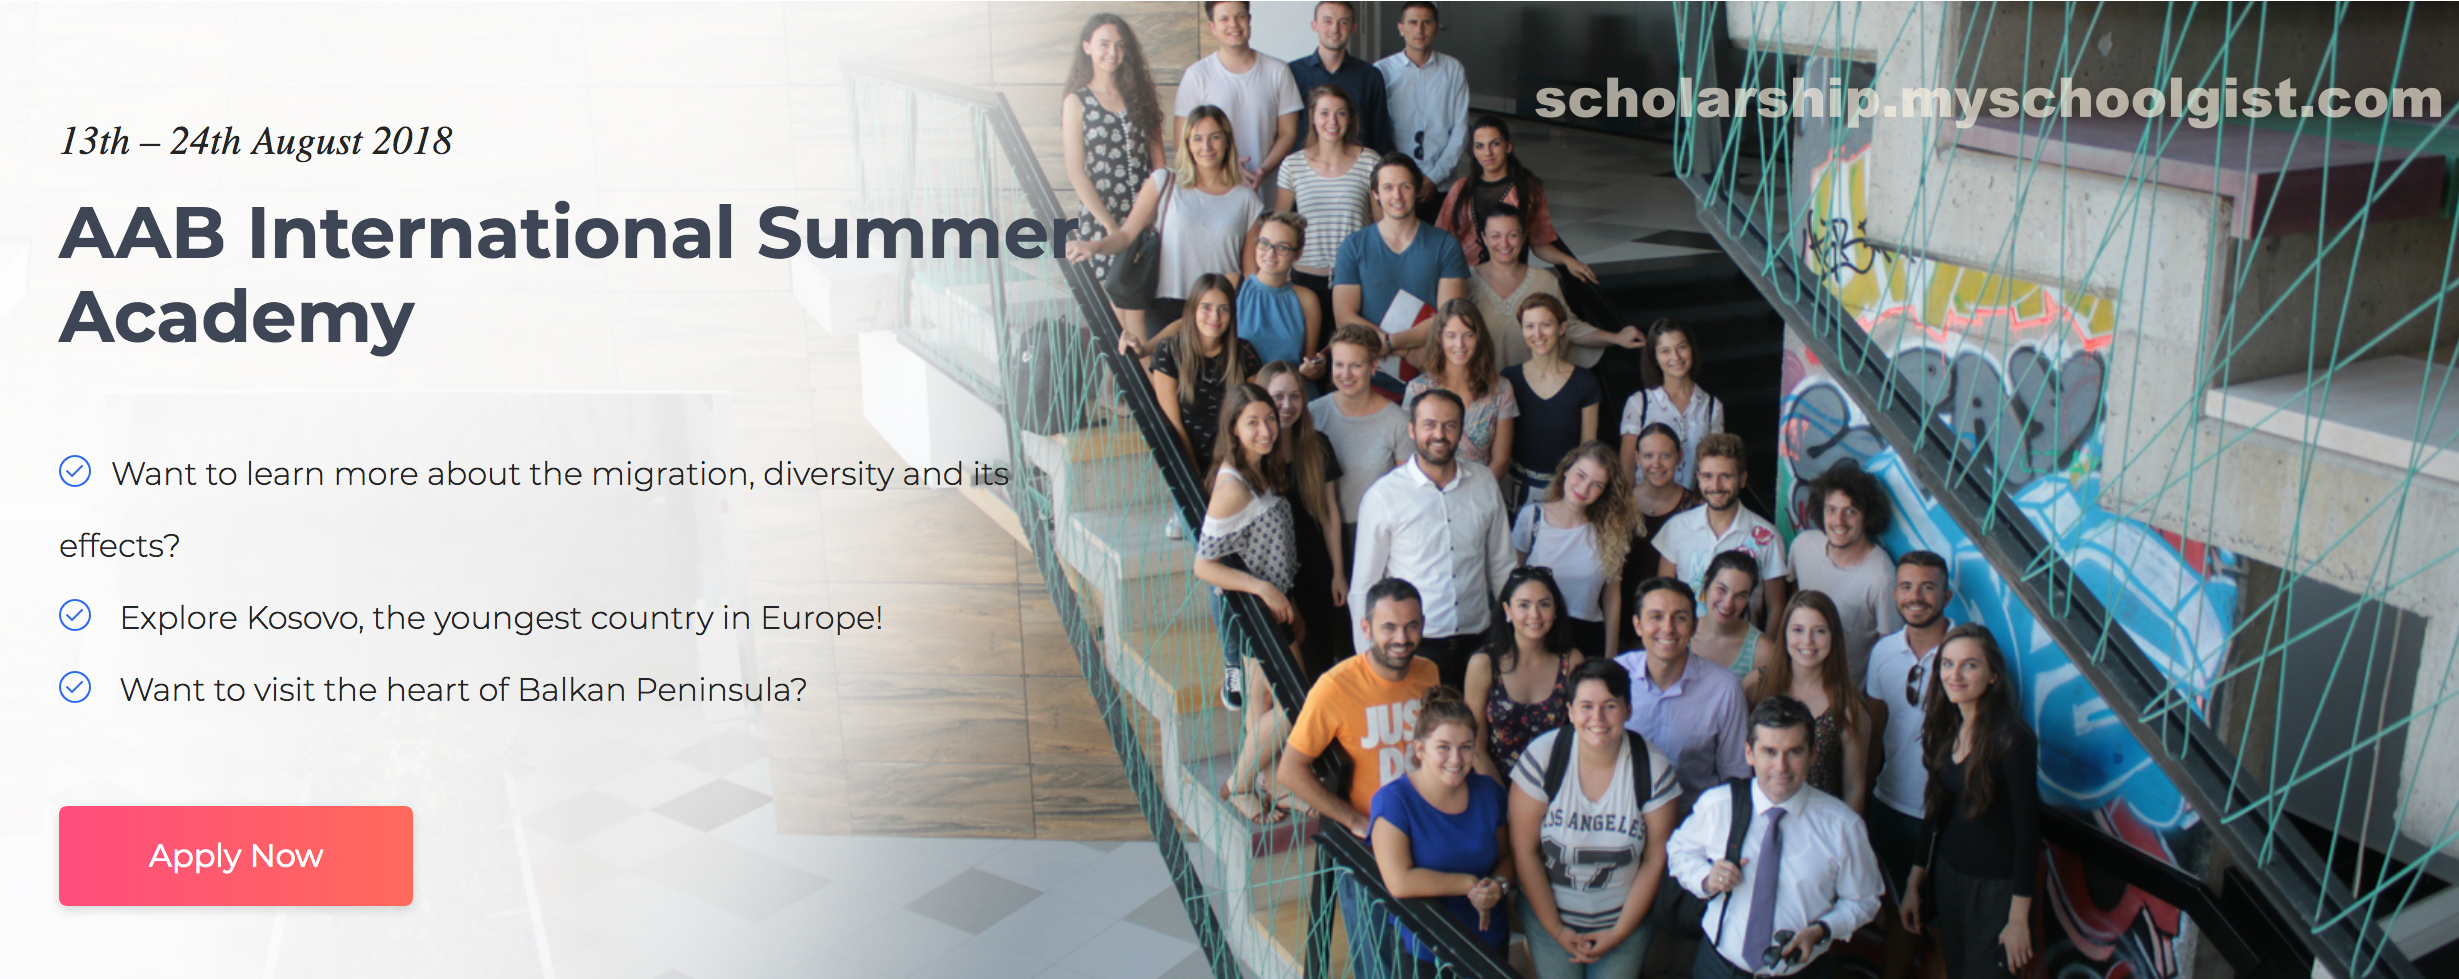 AAB International Summer Academy